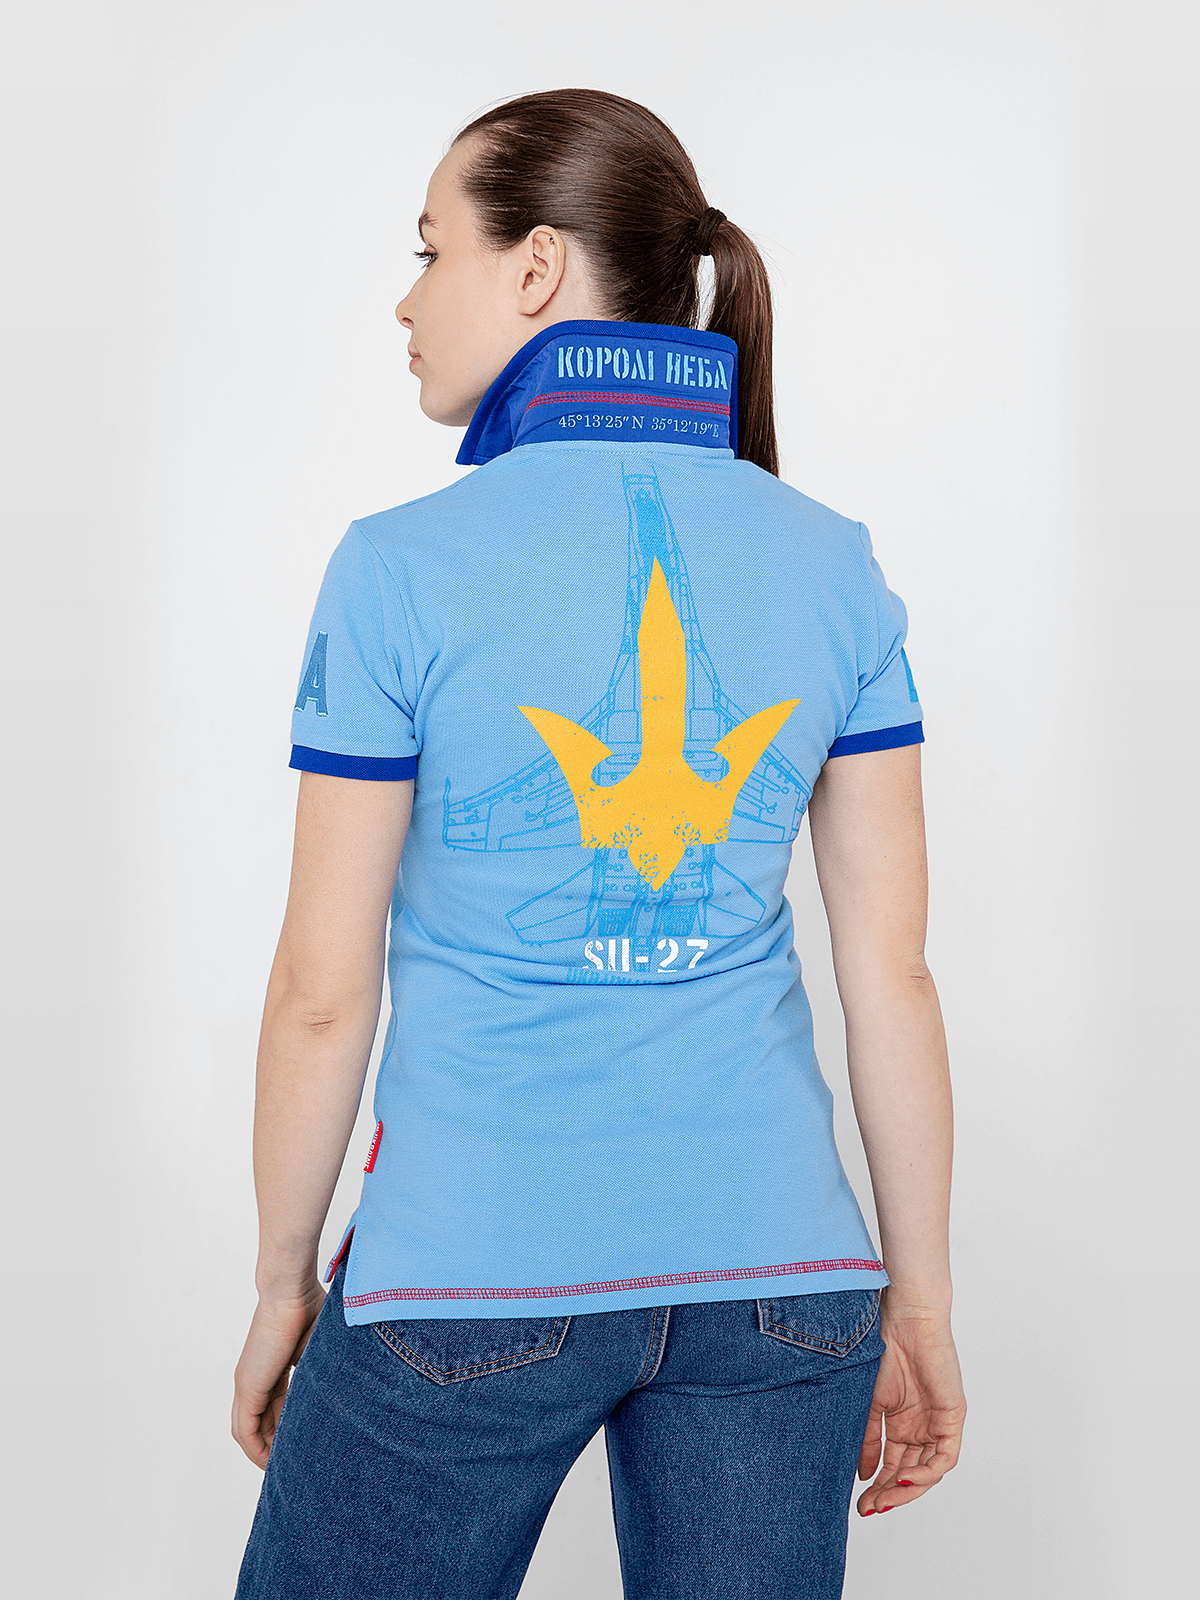 Women's Polo Shirt Ukrainian Falcons. Color sky blue.  Technique of prints applied: embroidery, silkscreen printing.